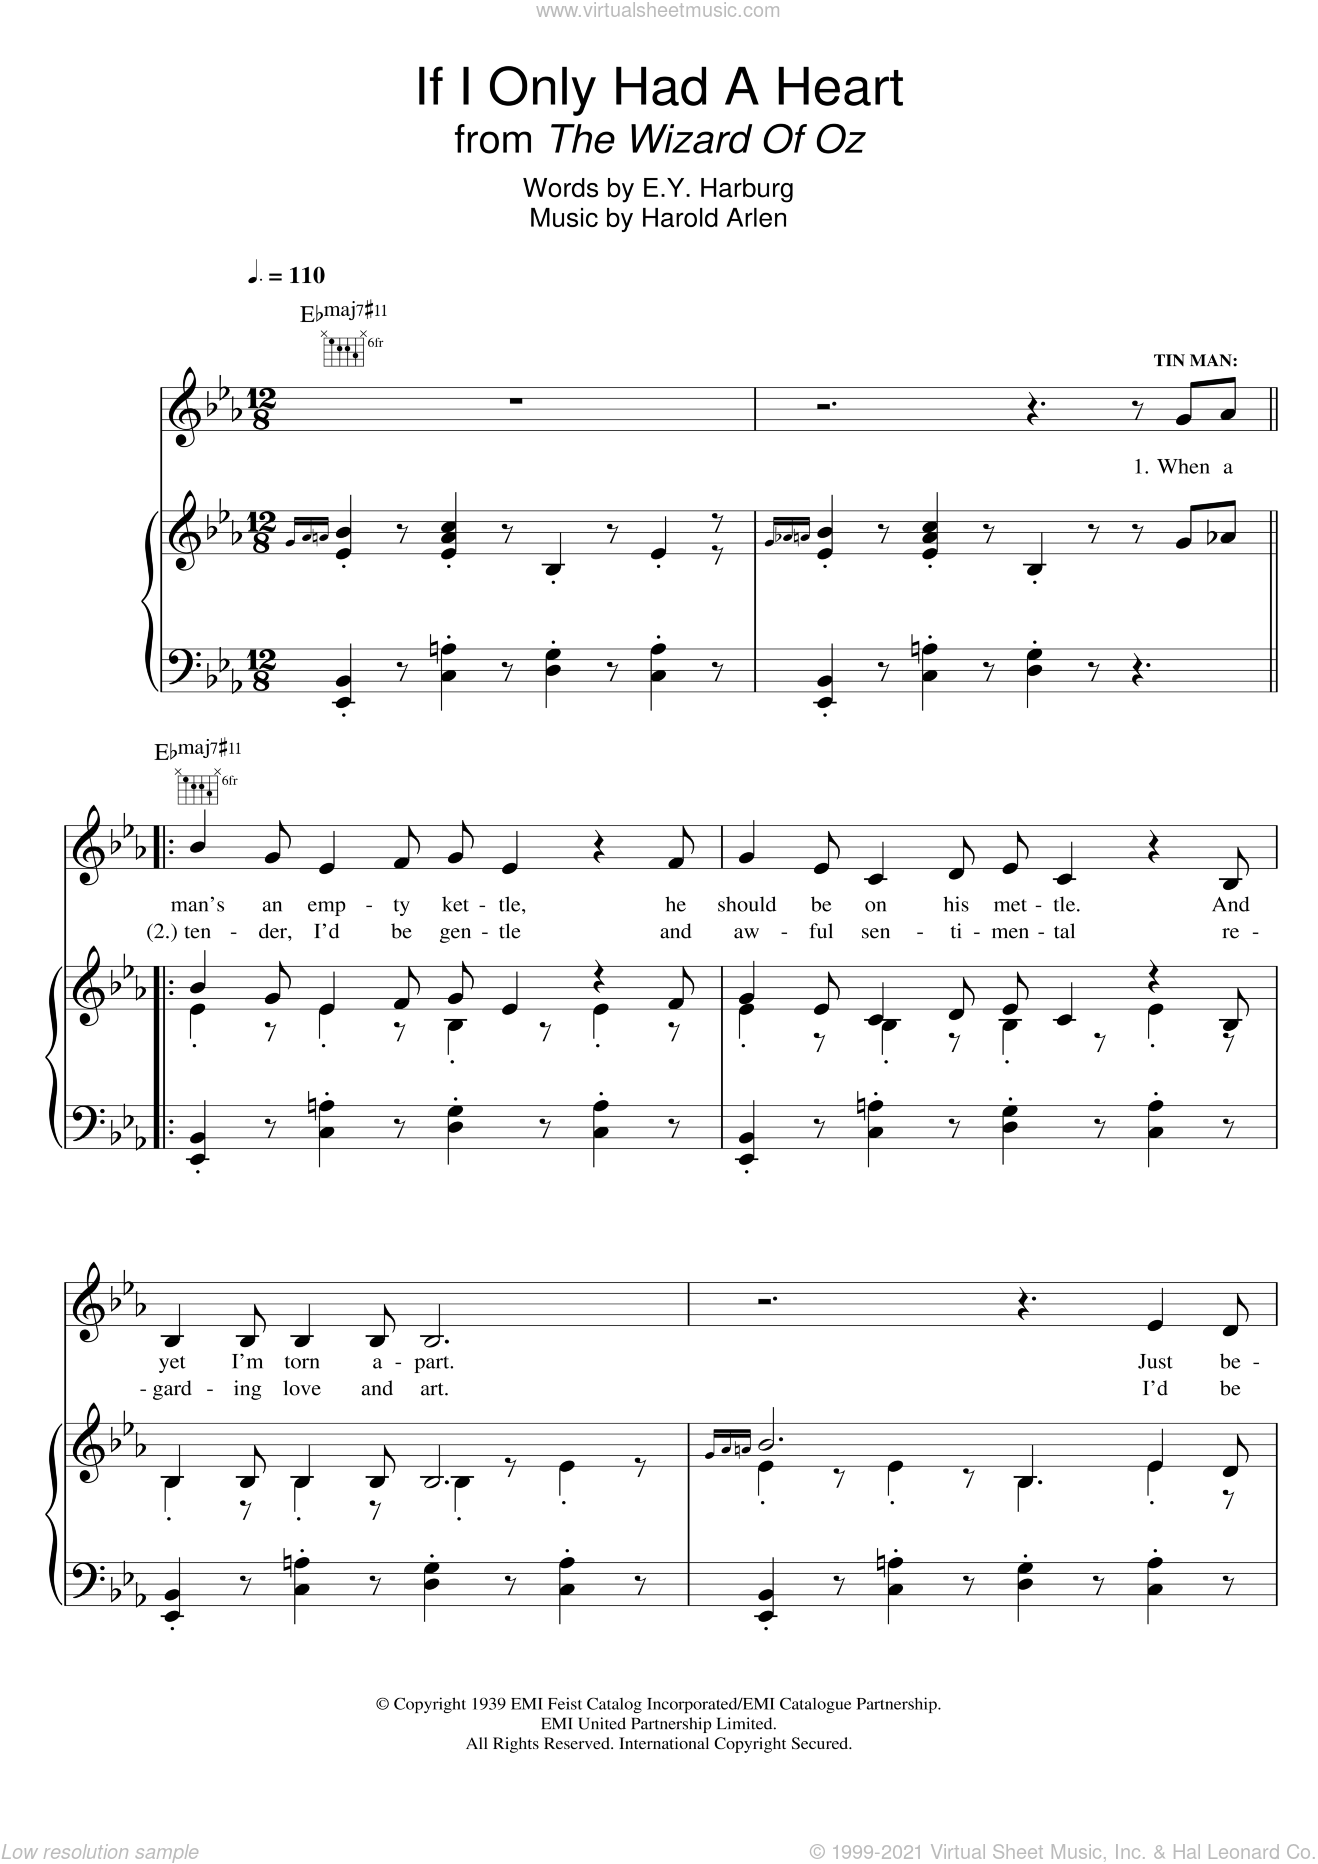 If I Only Had A Heart (from 'The Wizard Of Oz') sheet music for voice, piano or guitar by Harold Arlen and E.Y. Harburg, intermediate voice, piano or guitar. Score Image Preview.